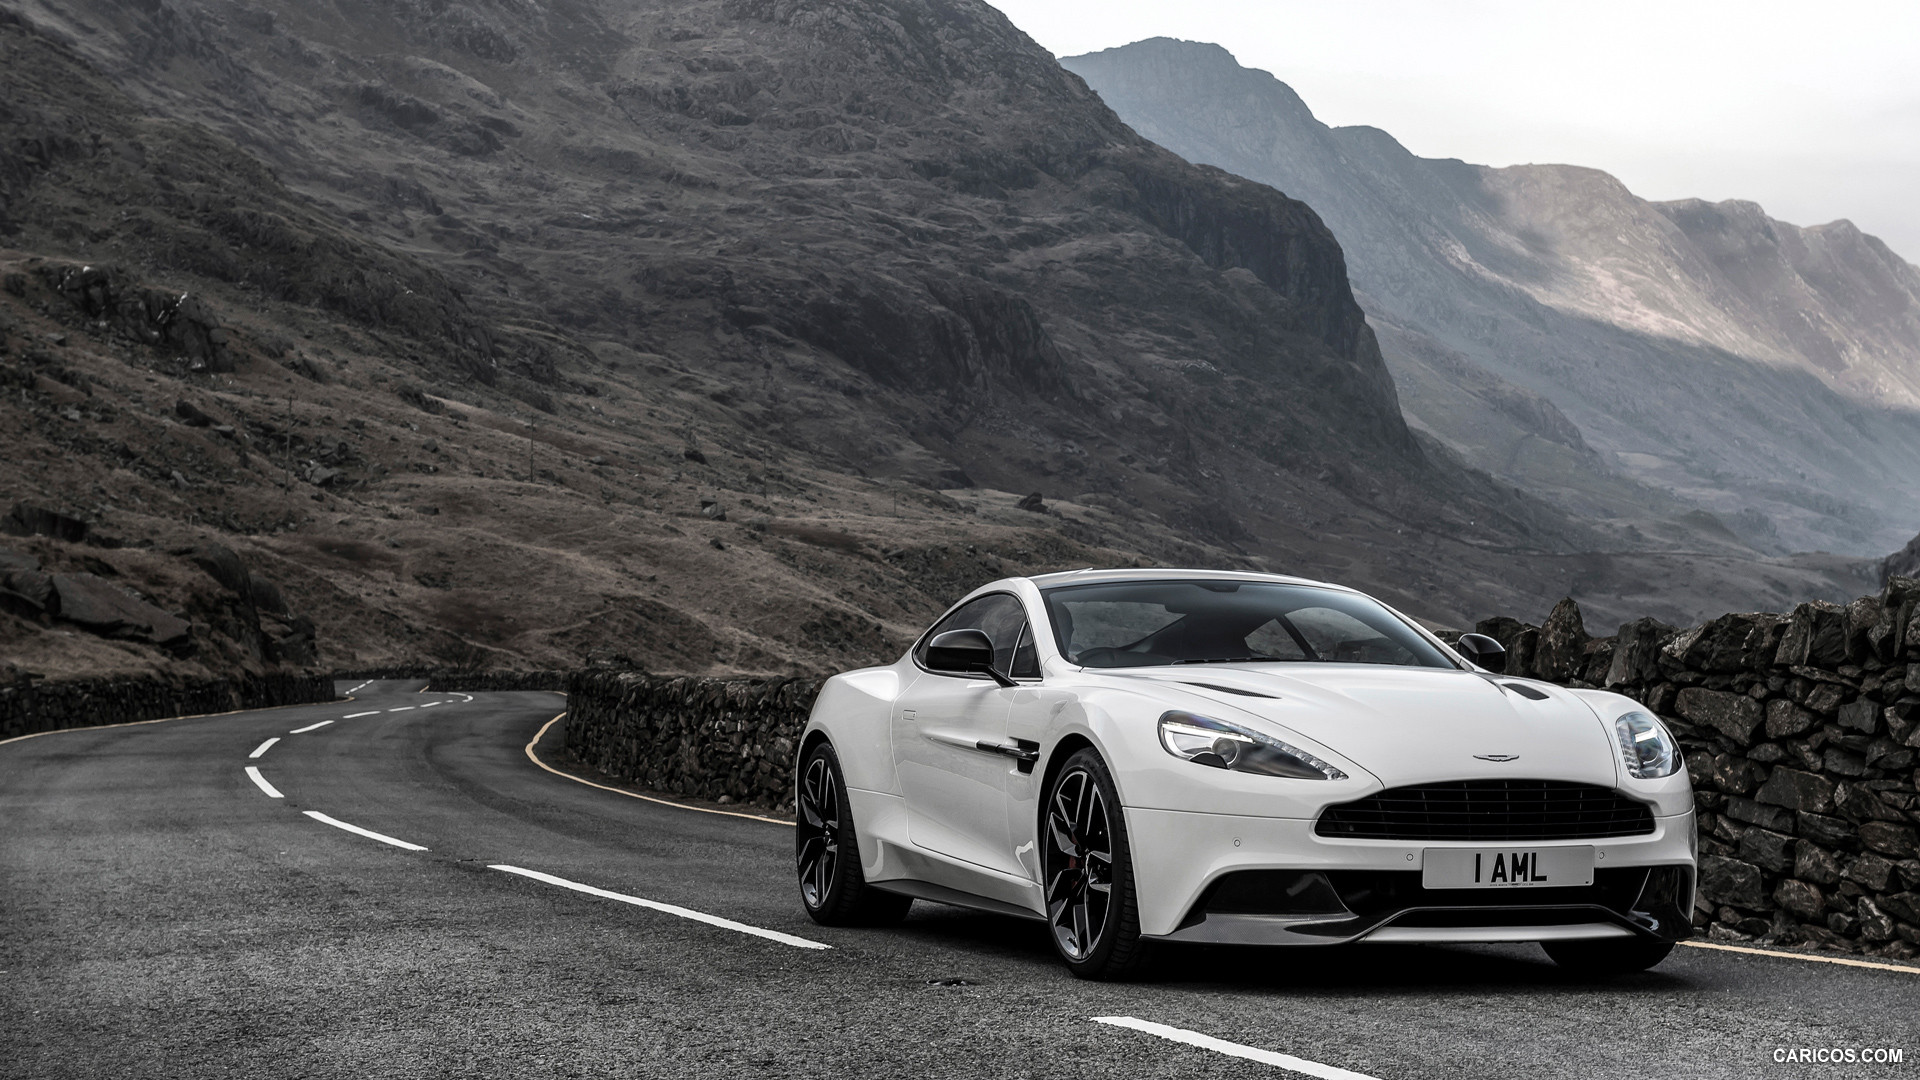 2015 Aston Martin Vanquish Carbon White Edition   Front HD 1920x1080